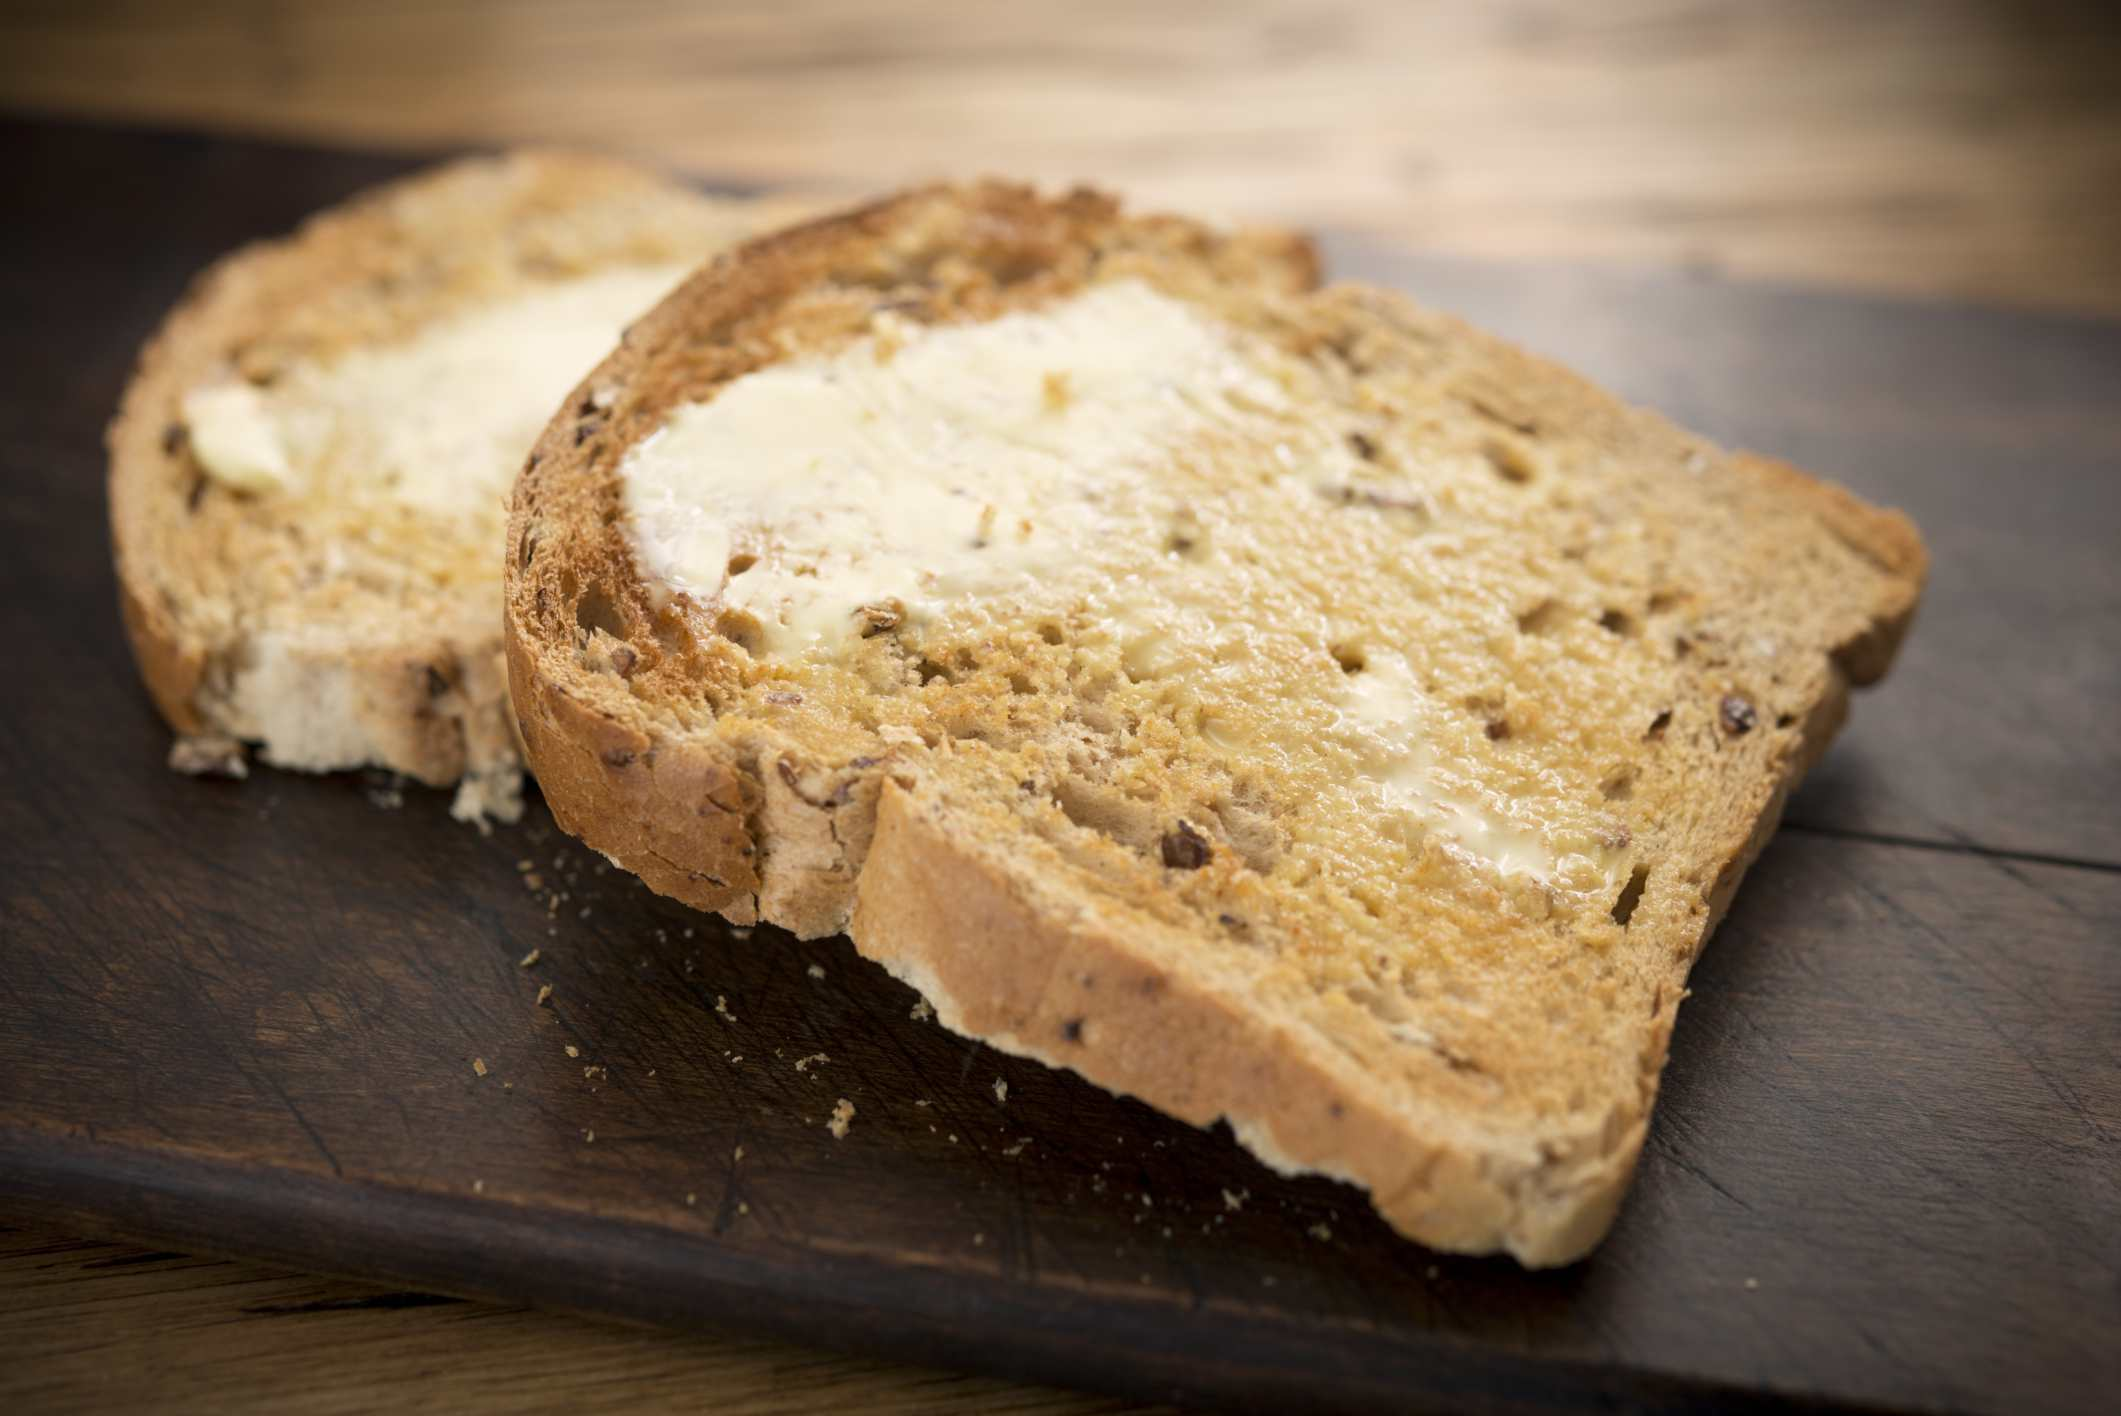 Whole grain bread is good for your diet.